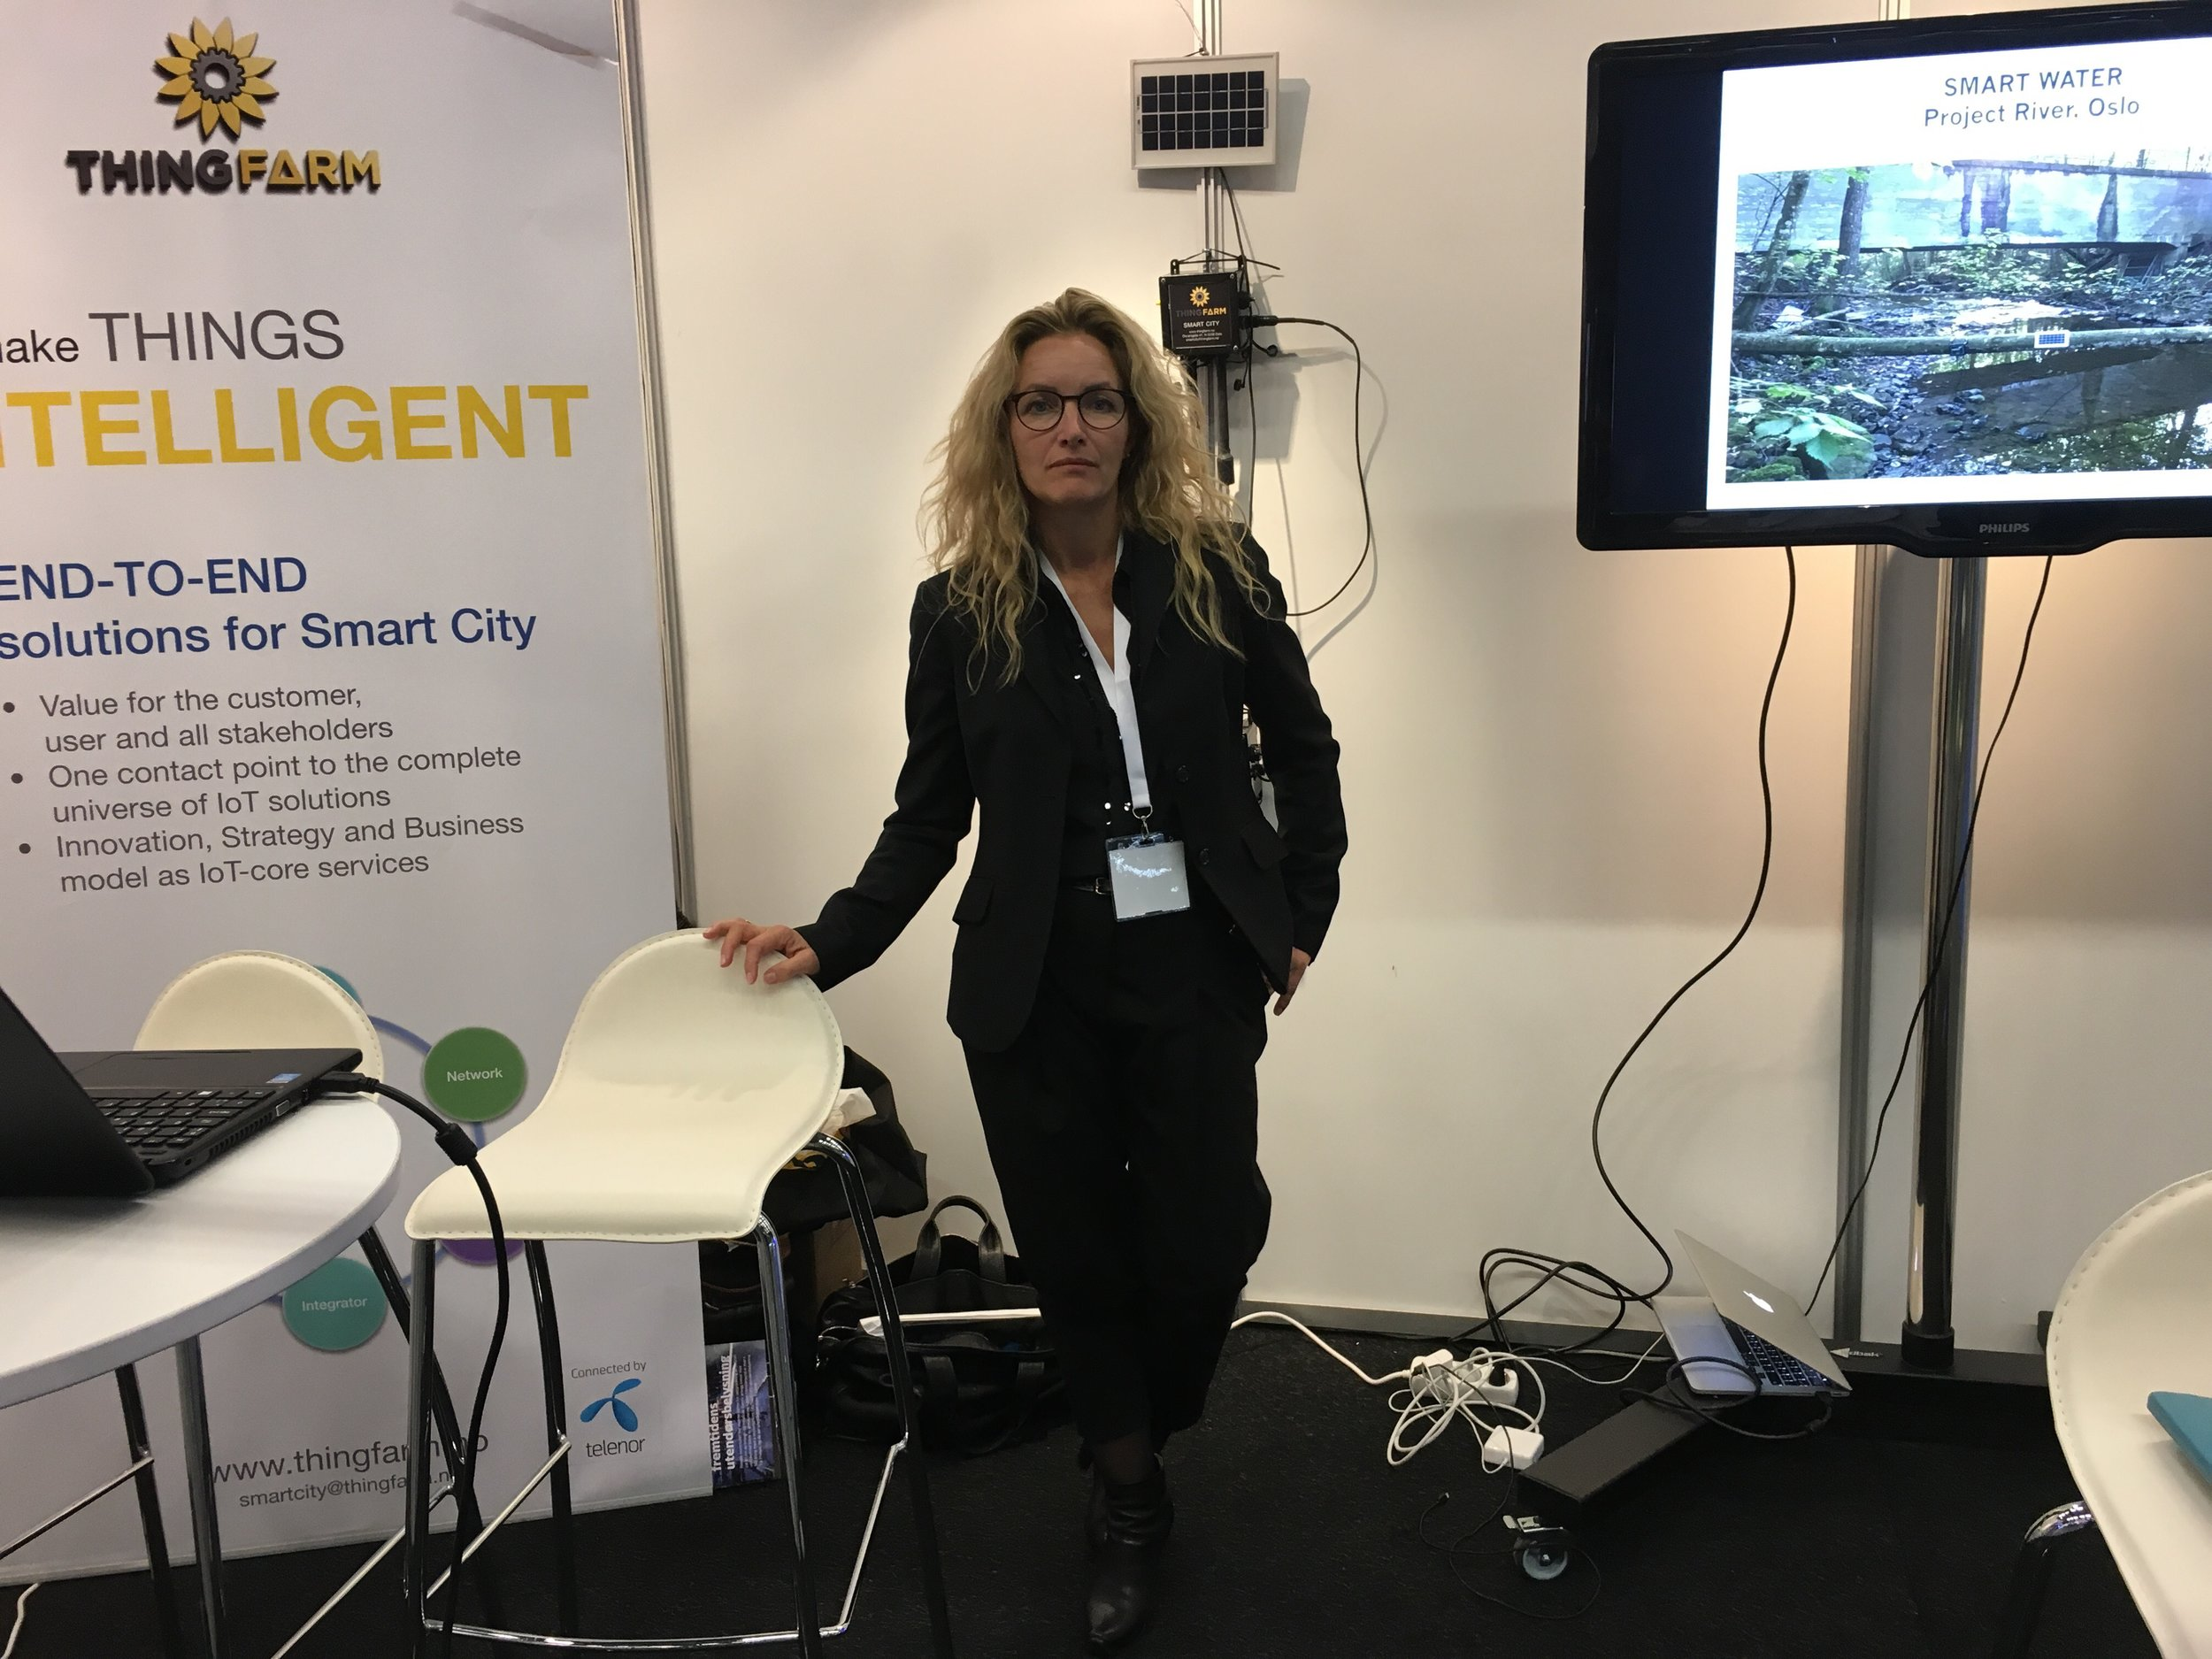 Our CEO heidi scheie attending our booth of smart air & Smart Water